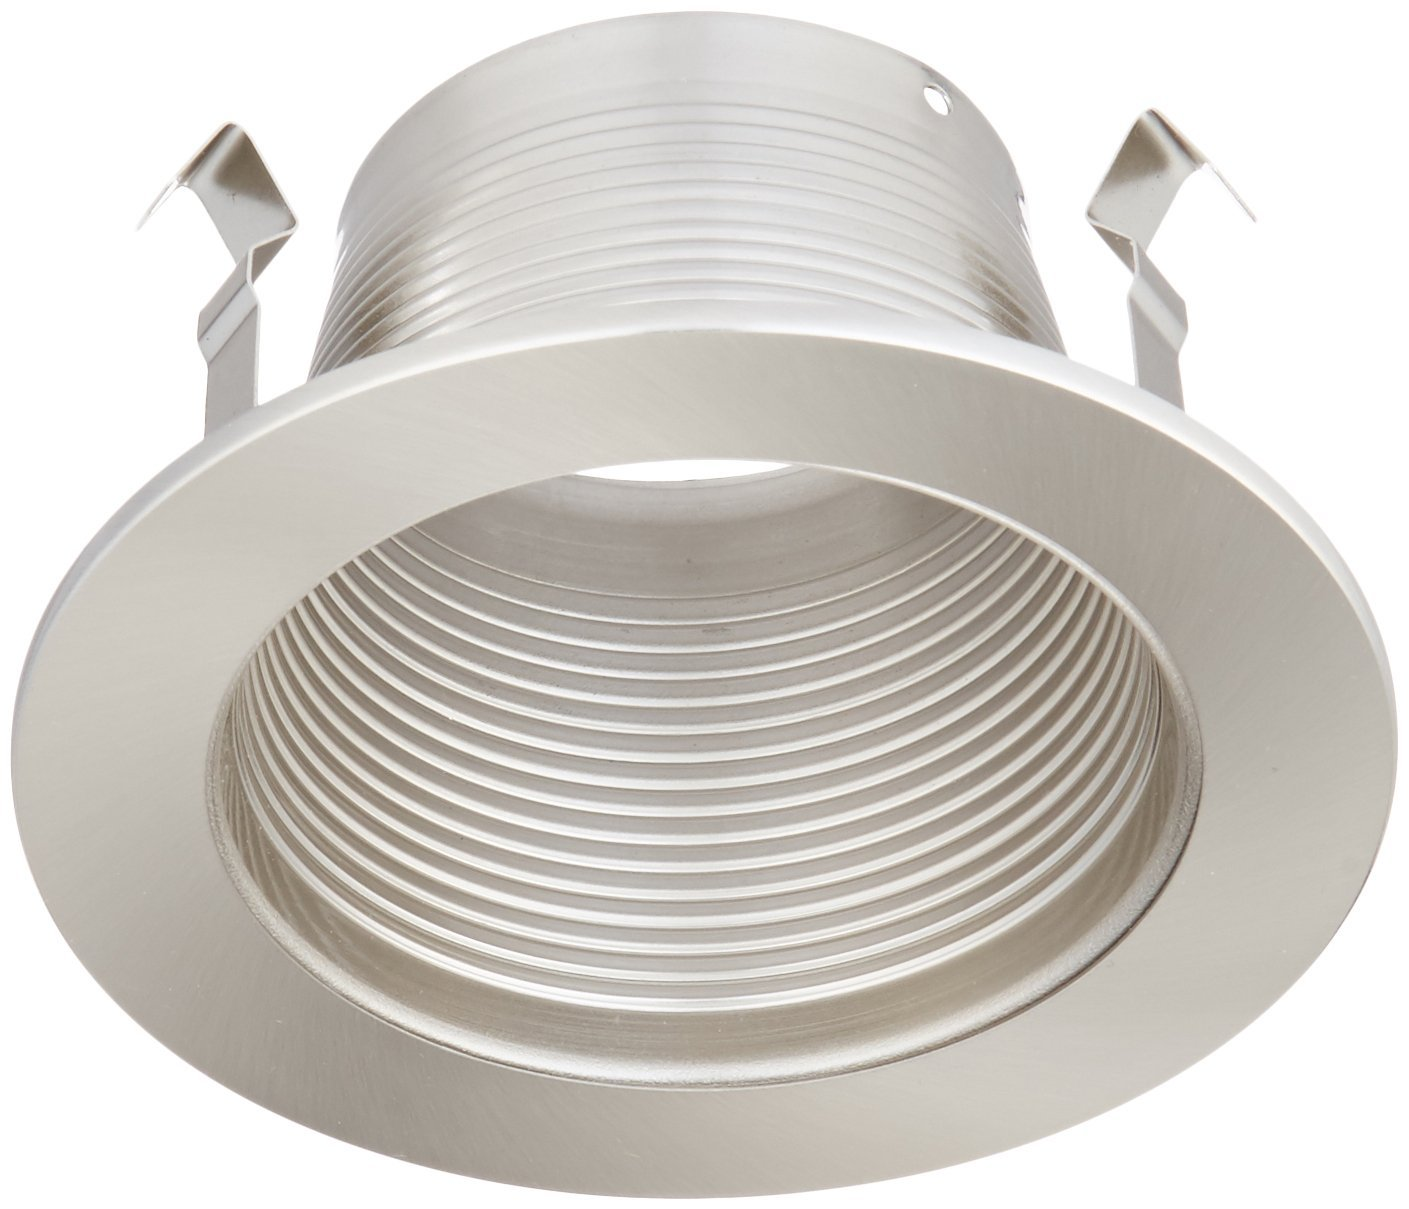 WAC Lighting R-420-BN R400 Series Trim Step Baffle